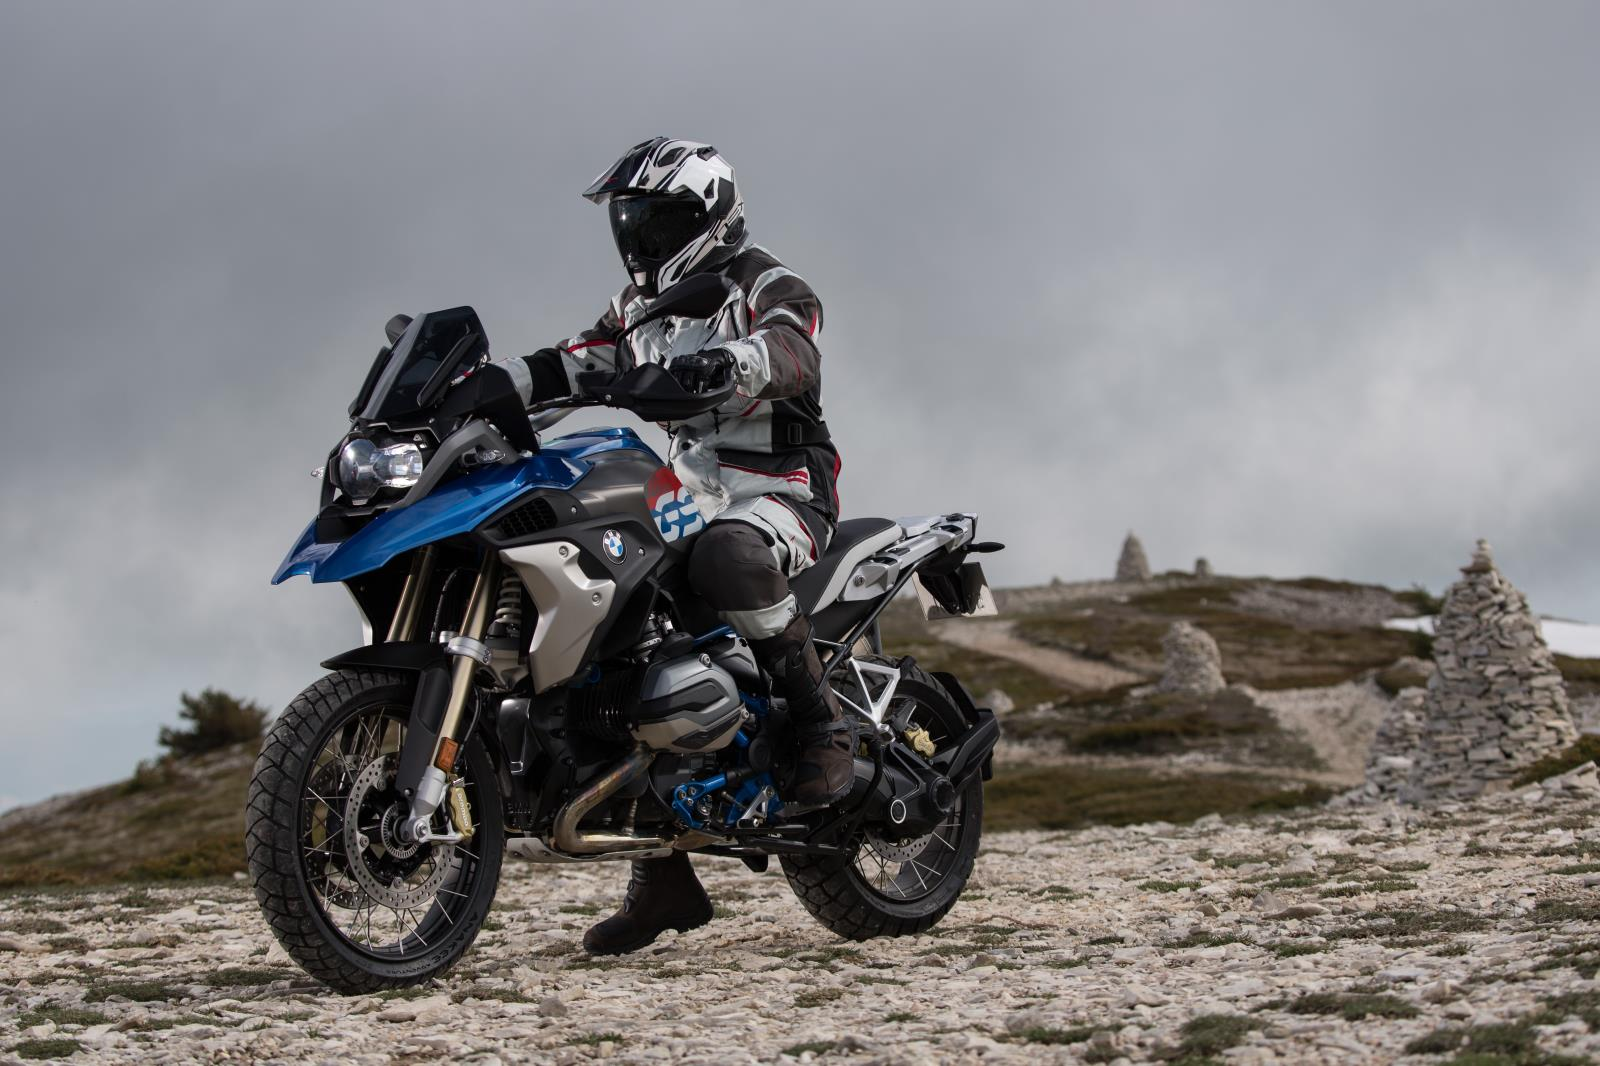 MICHELIN_Photo_ANAKEE_ADV_CHEMIN_BMW_R_1200_GS_2018_012__2_.jpg